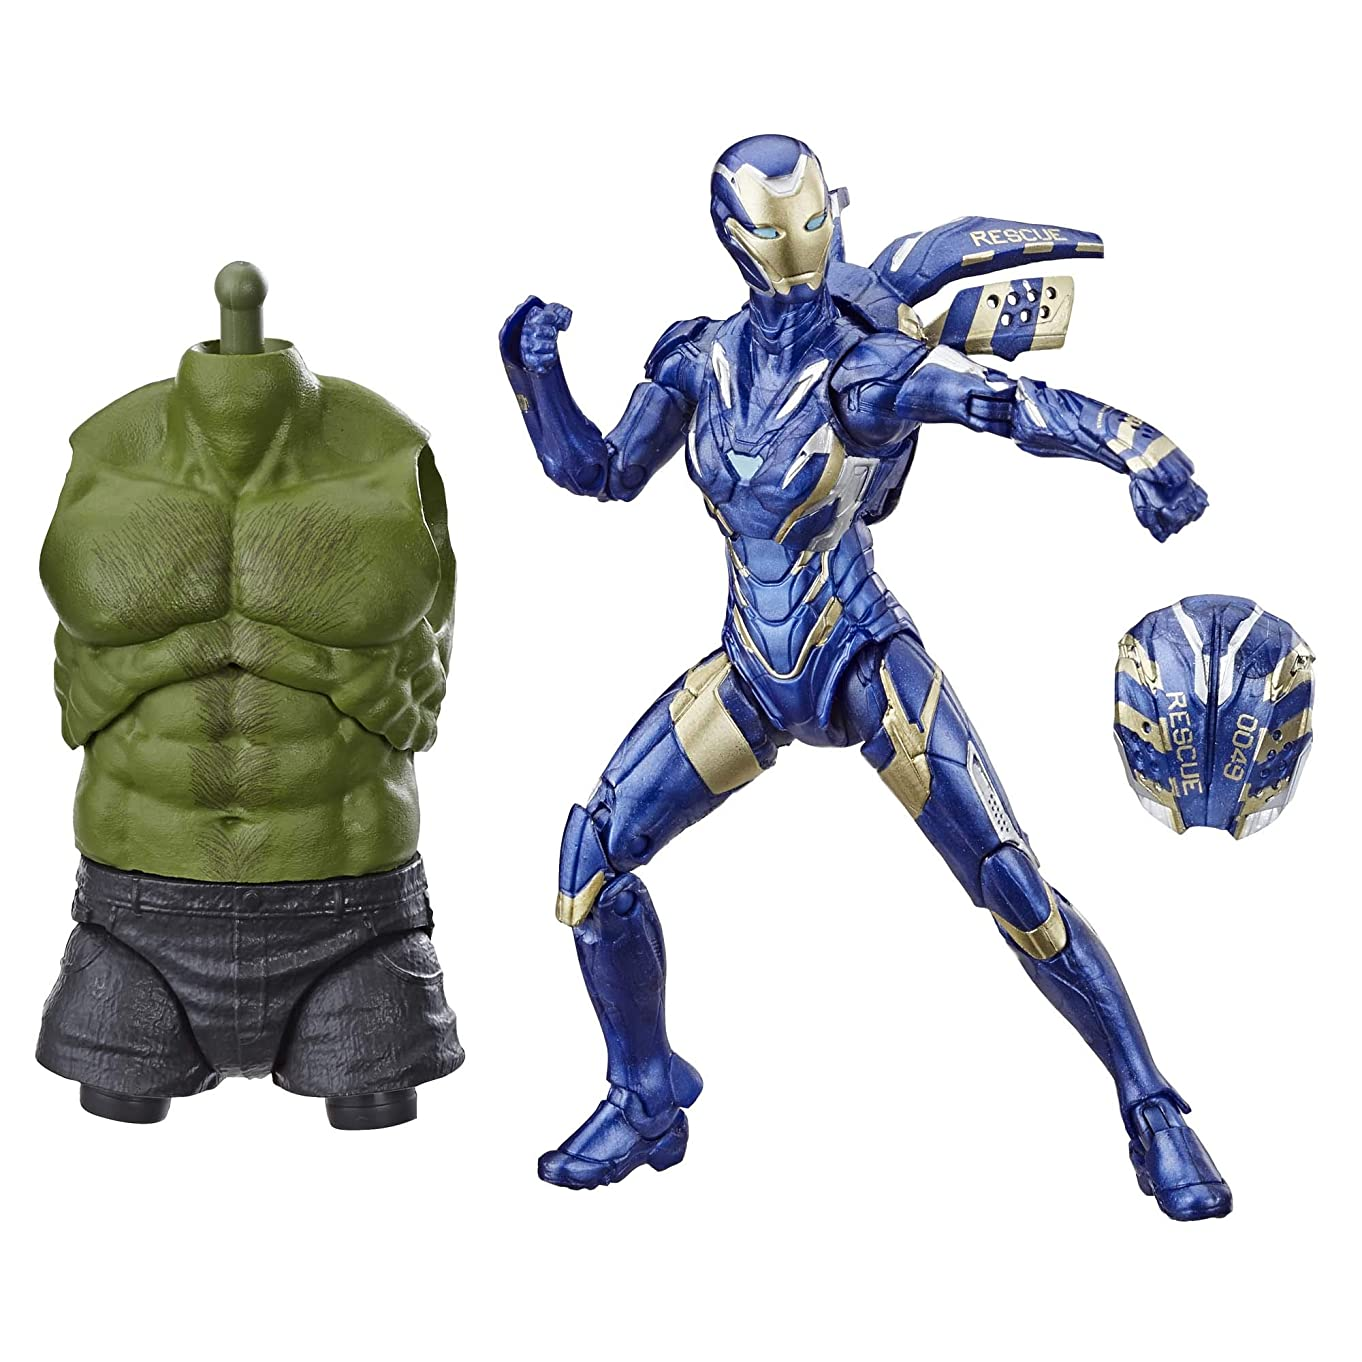 Avengers Marvel Legends Series Endgame Marvel's Rescue 6-inch Collectible Action Fig